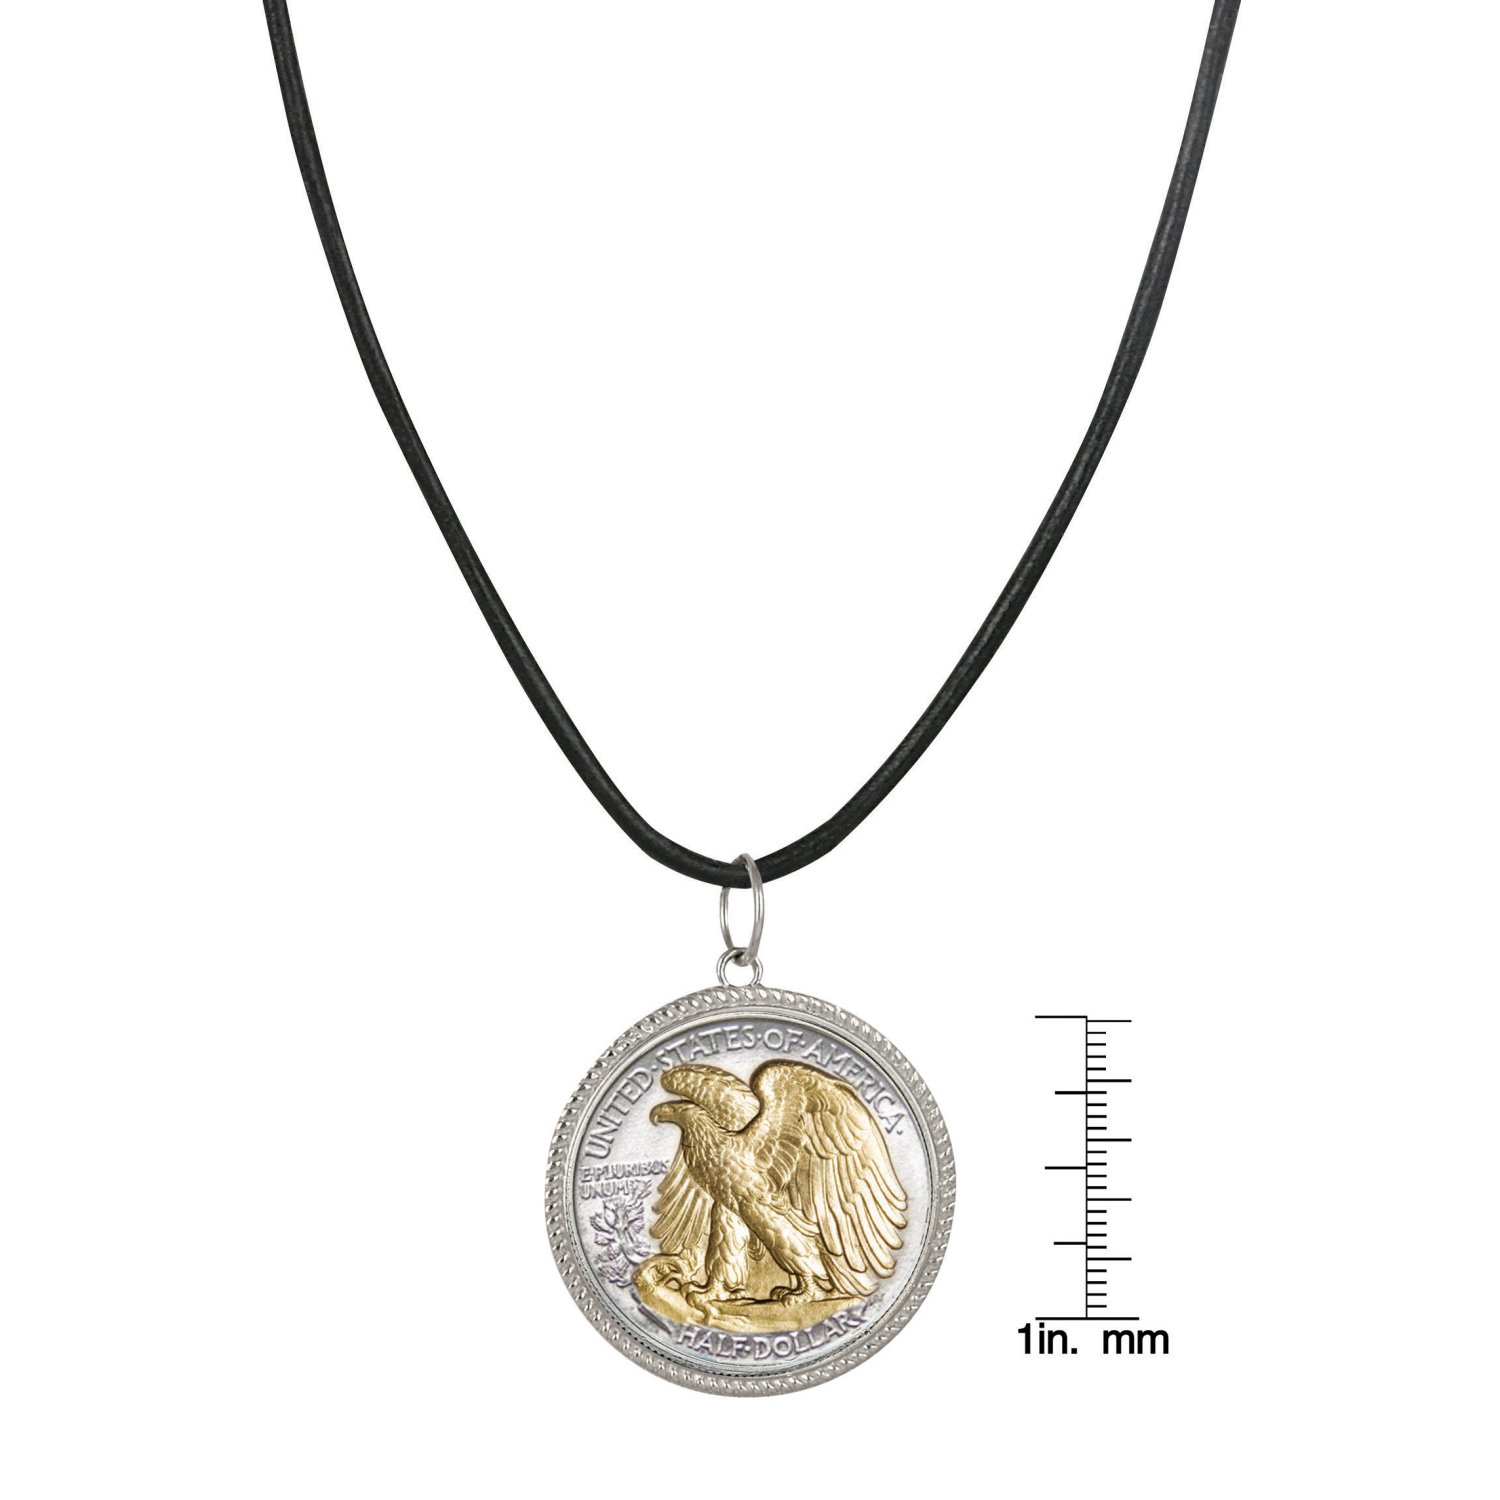 Walking Liberty Silver Half Dollar Pendant With Leather Cord - Reverse 2 Tone Plating